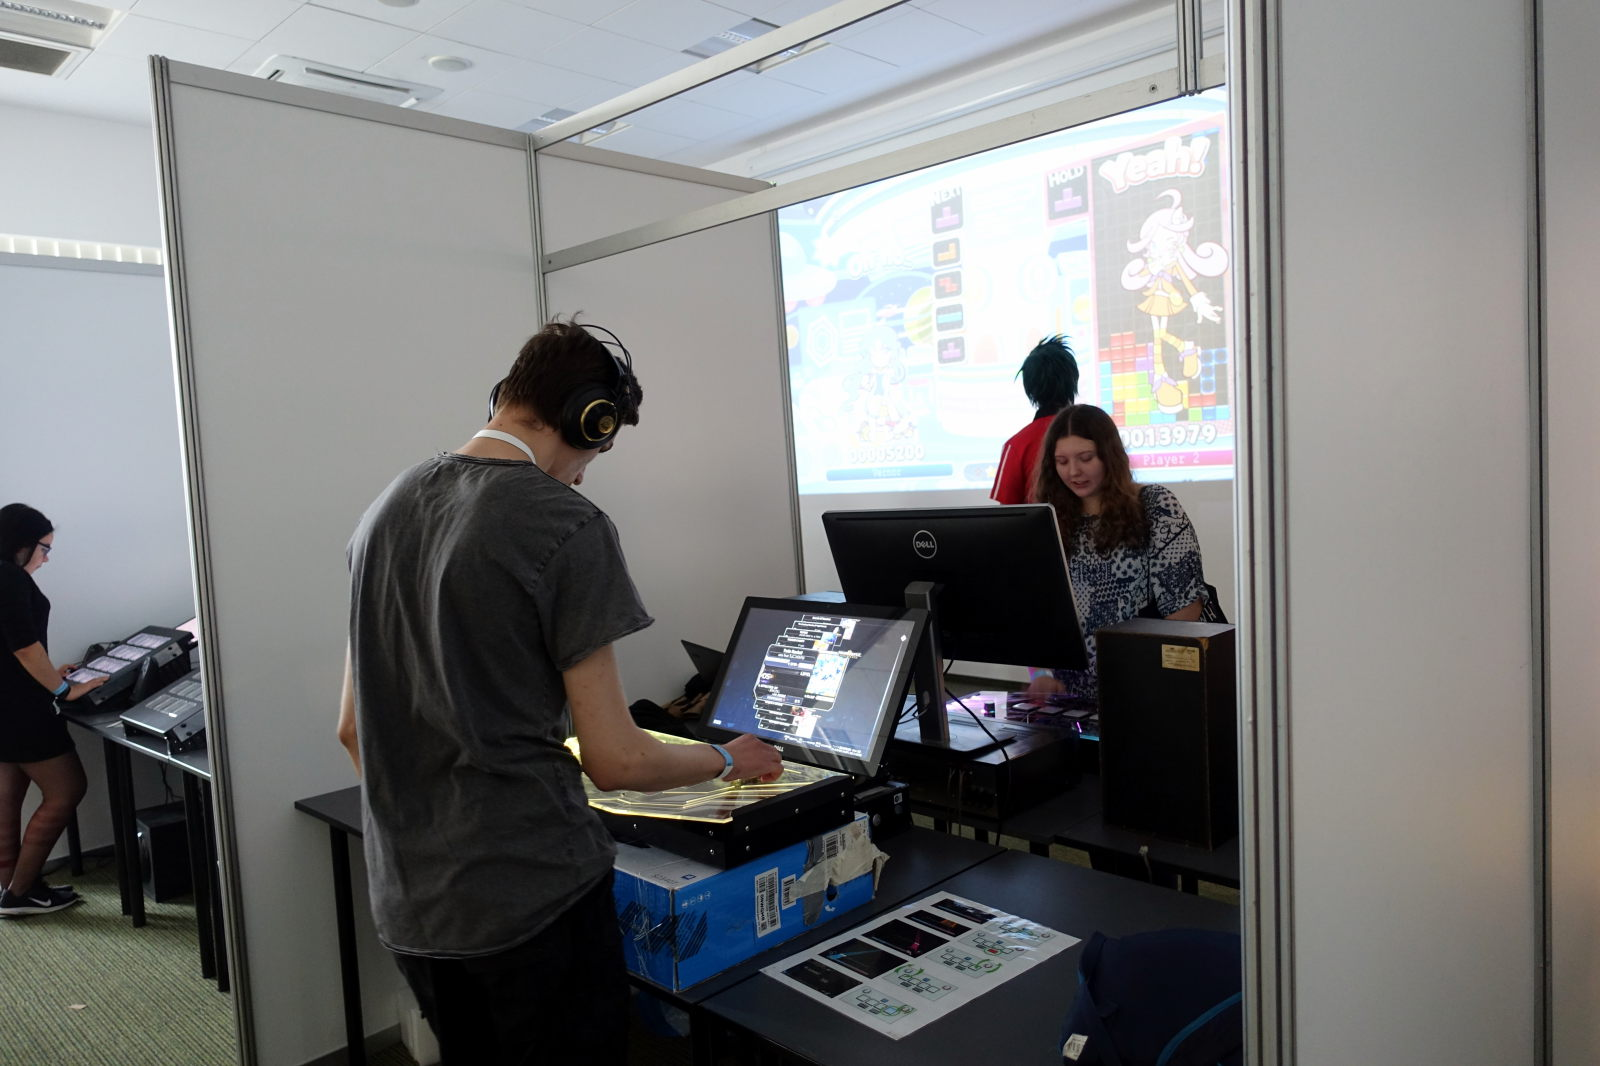 Picture shows people playing music games.